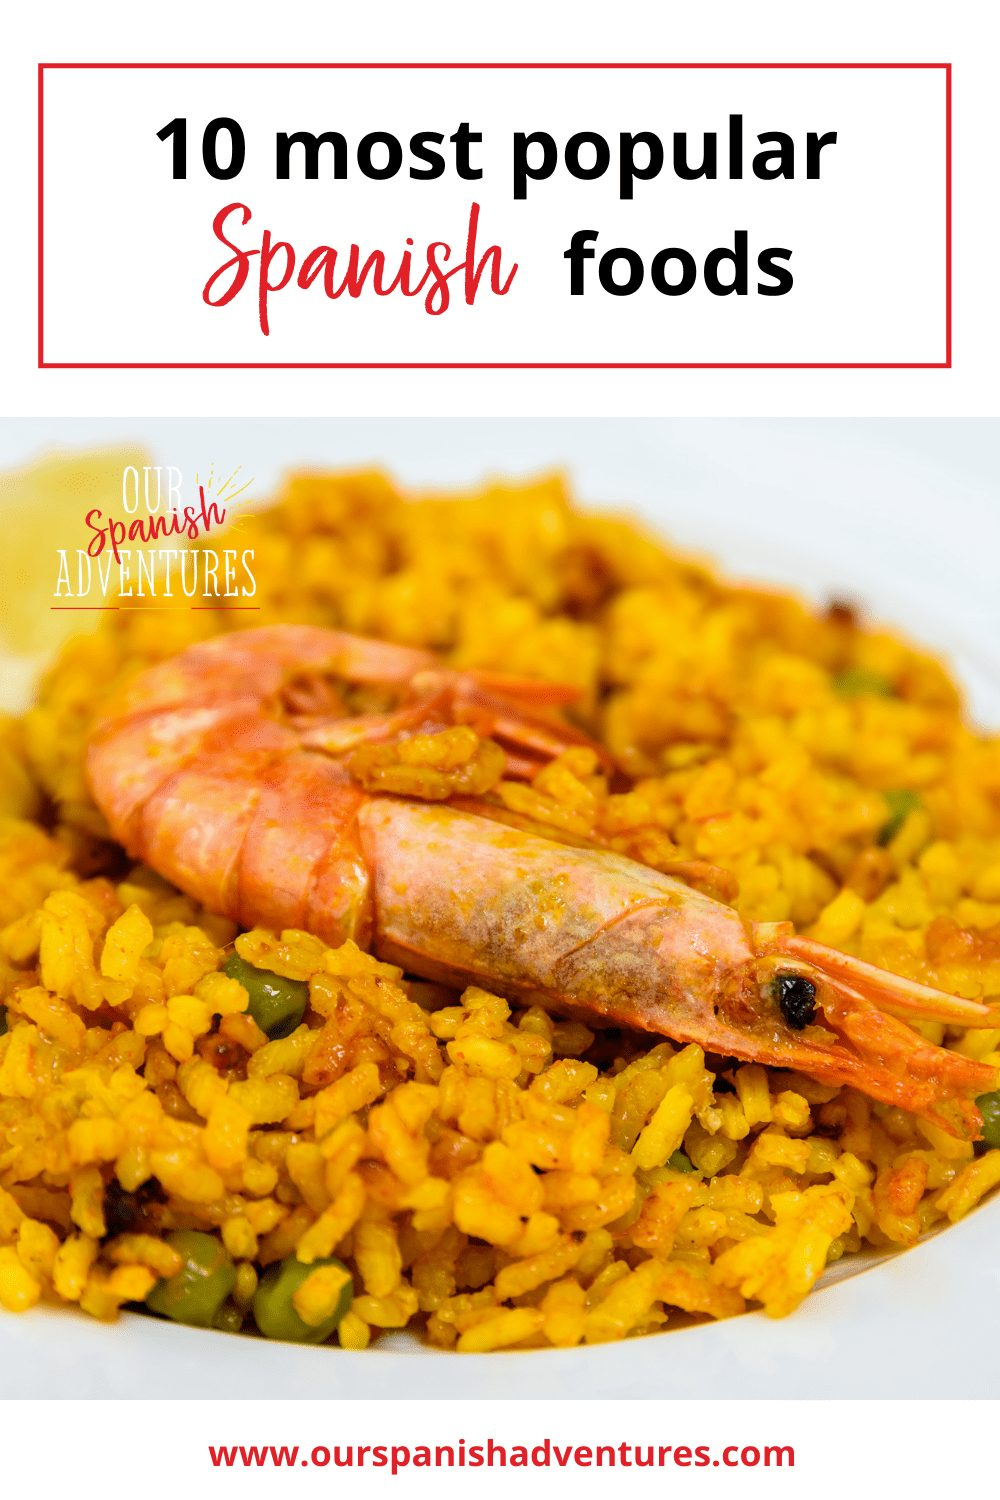 10 most popular Spanish foods | Our Spanish Adventures